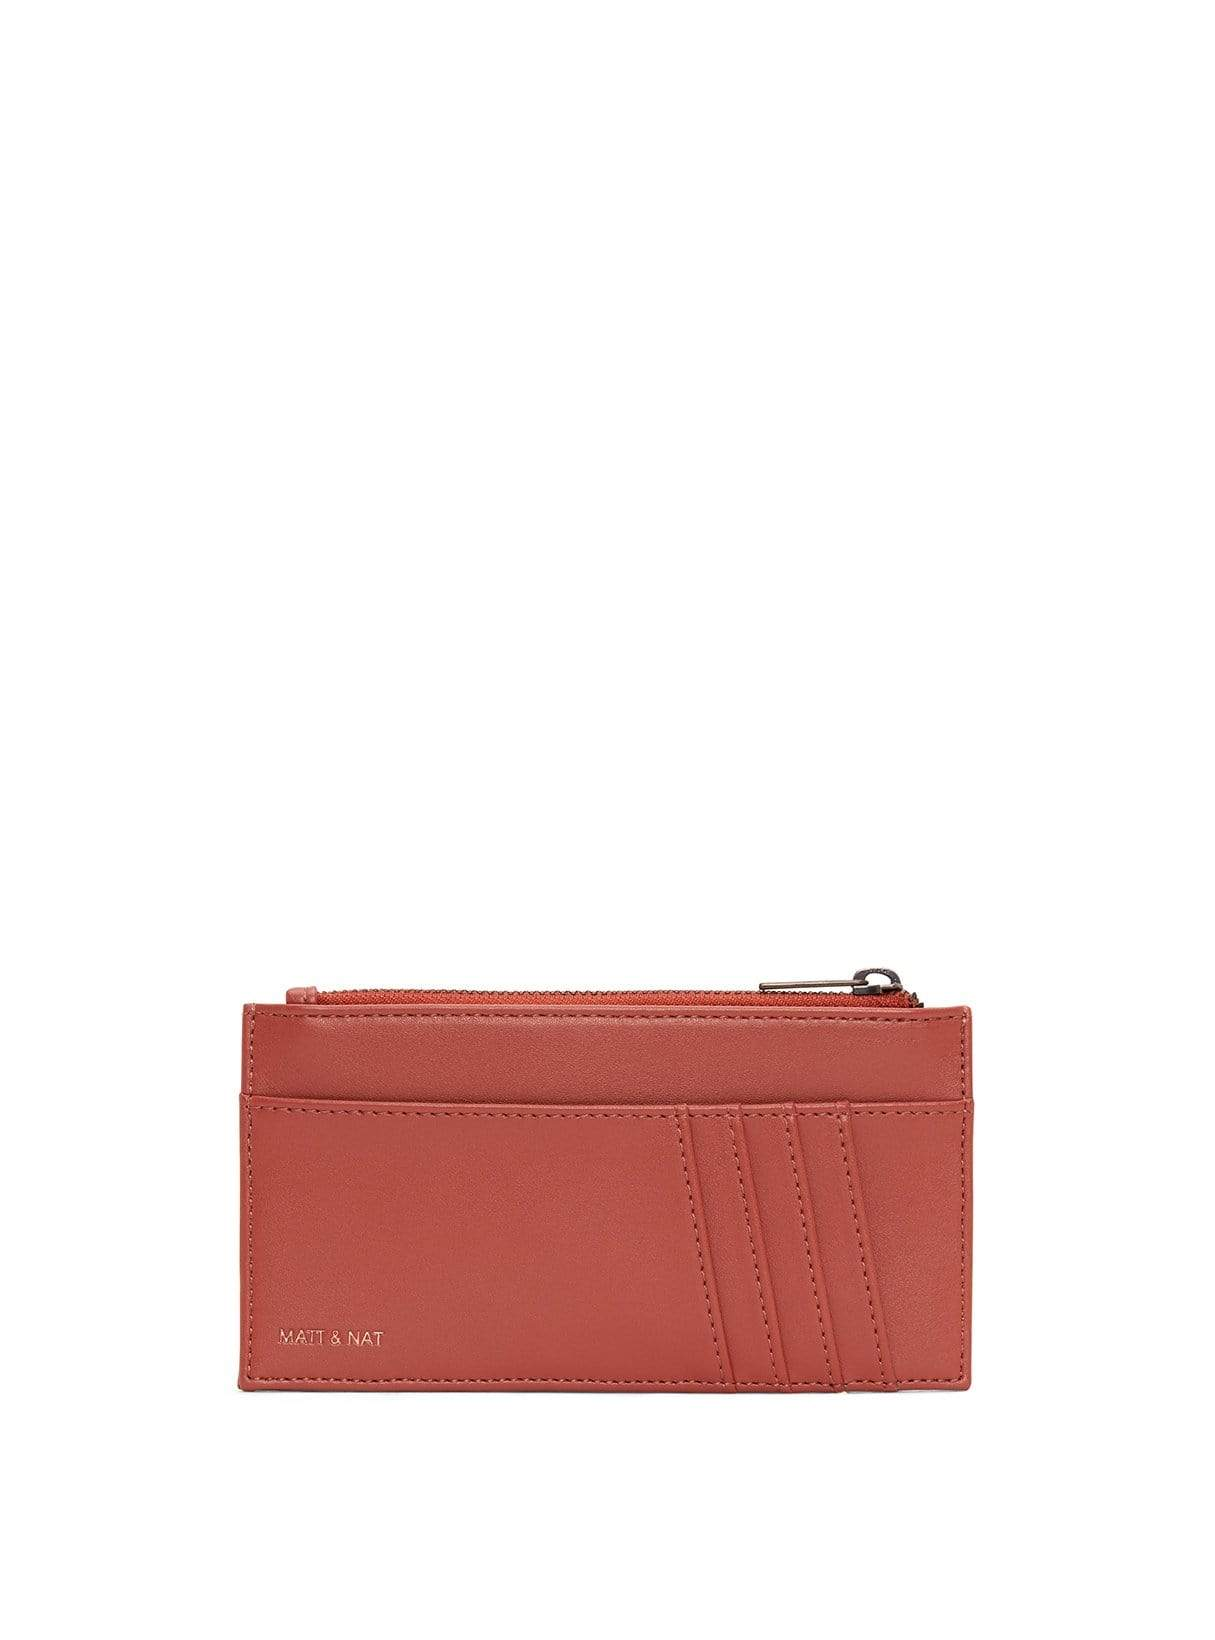 Nolly loom - wallet - desert